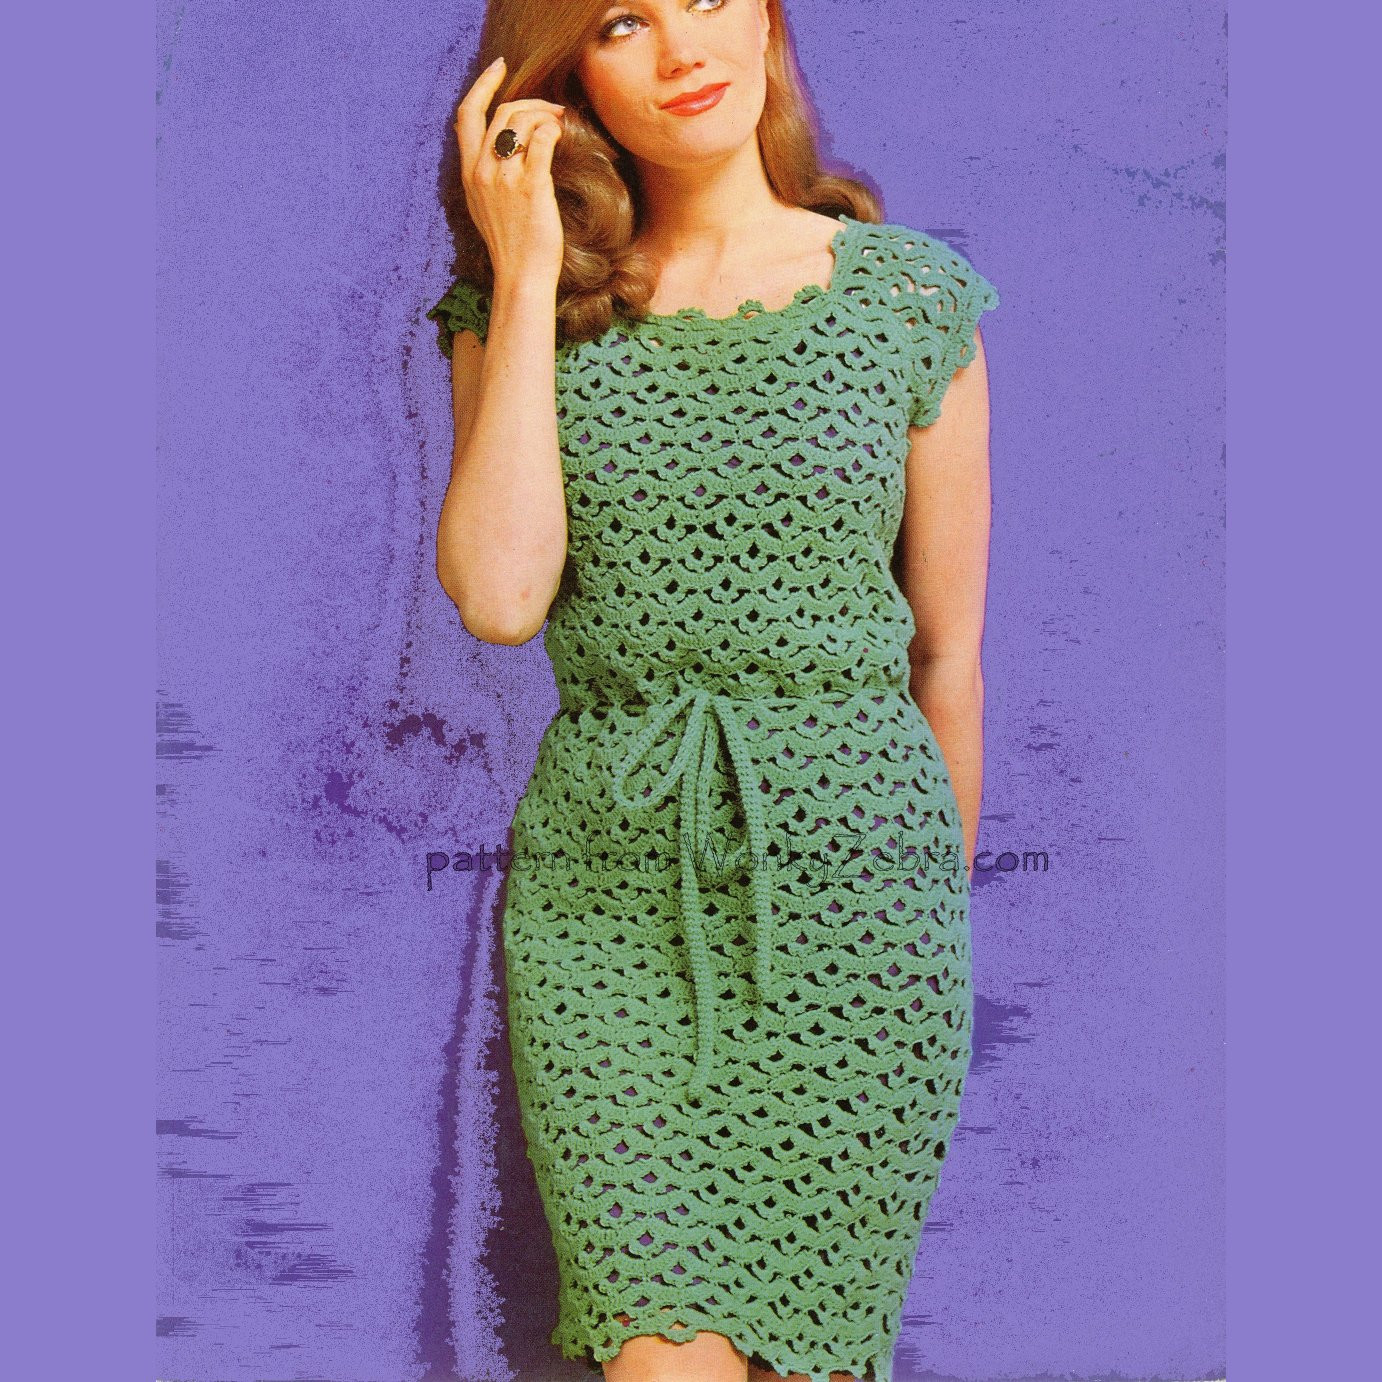 Crochet Clothing Fresh 4 Summer Dresses Of Awesome 49 Images Crochet Clothing